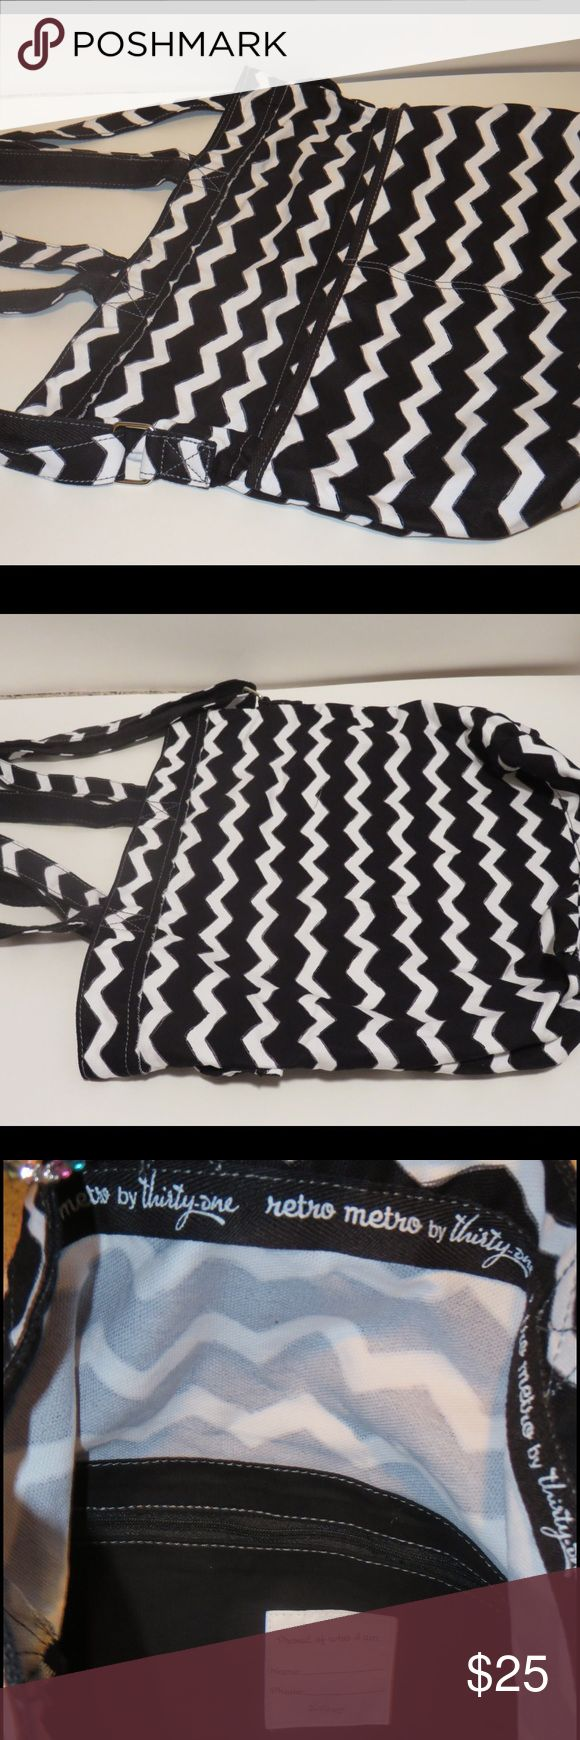 Brand new Thirty one retro metro bag This is a black and white retro metro bag from thirty-one. One side of the outside has two pockets and the other side has zero. There is a zipper pocket on the inside. This bag has handles as well as an adjustable shoulder strap. This is brand new, never used! thirty-one Bags Totes